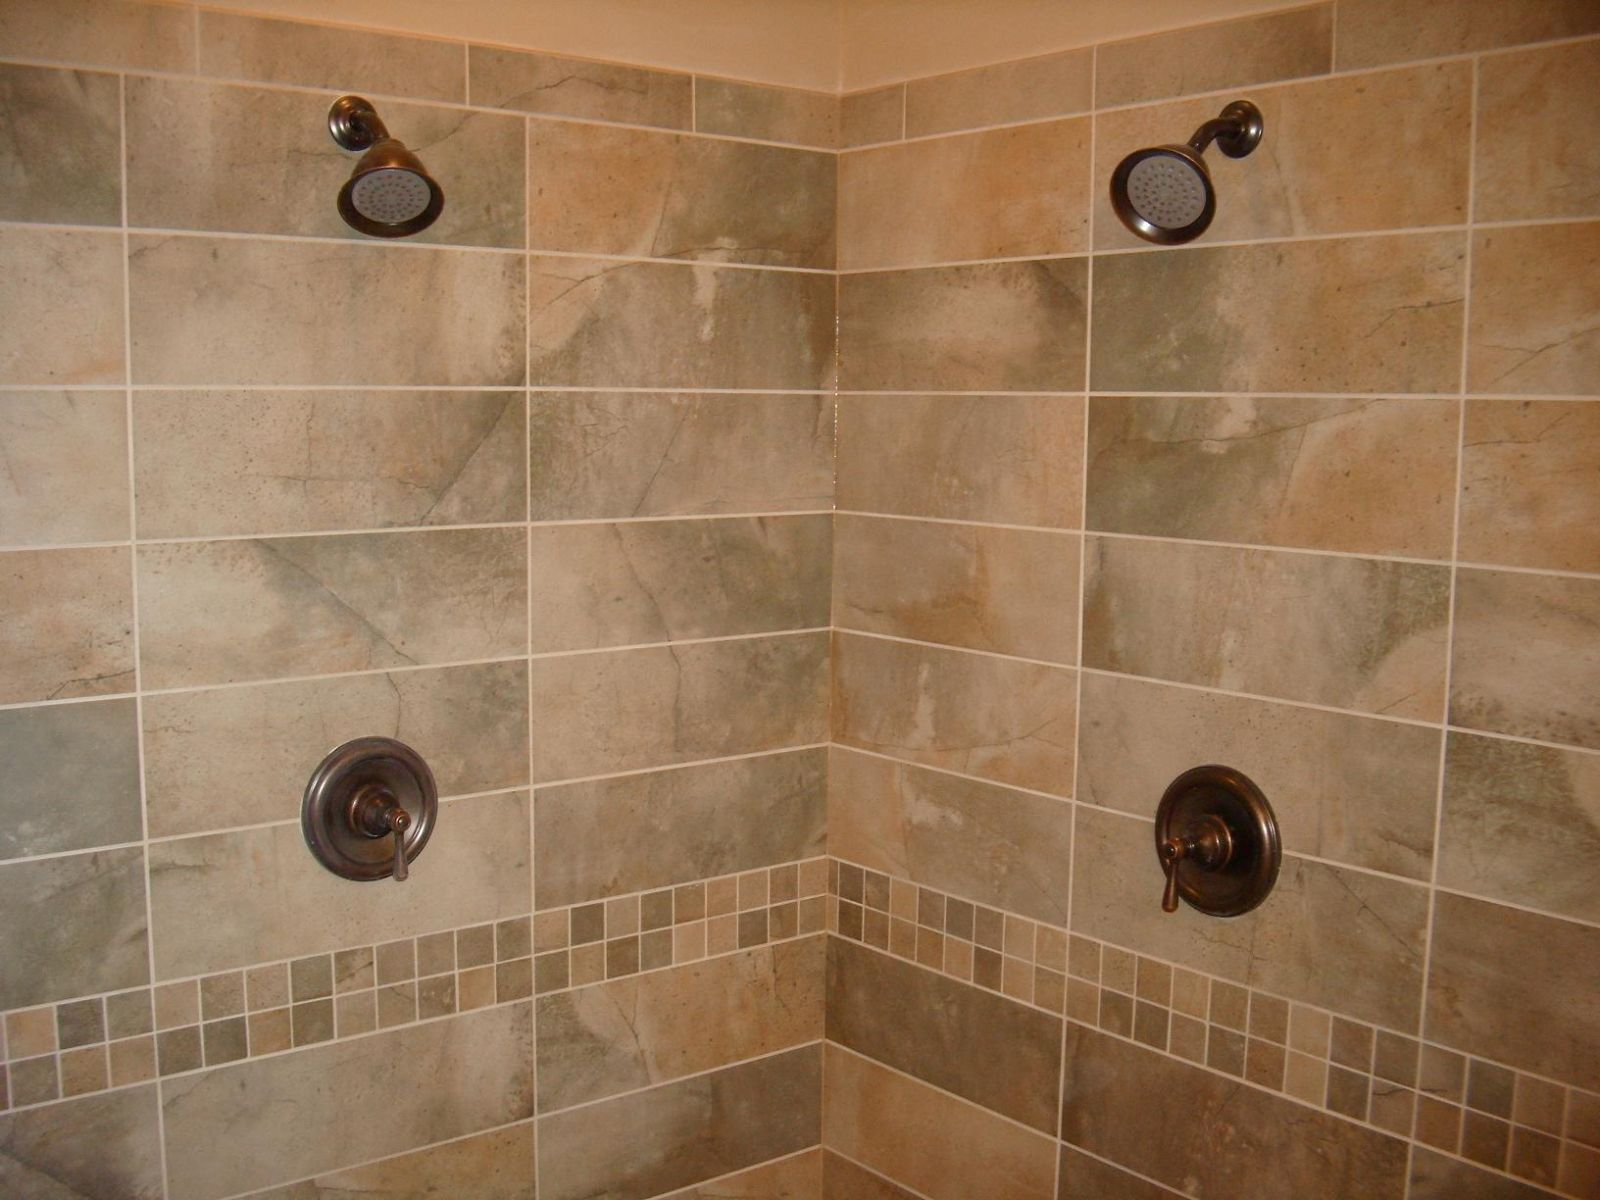 Bathroom Tile Ideas Craftsman Style : Nice pictures and ideas craftsman style bathroom tile